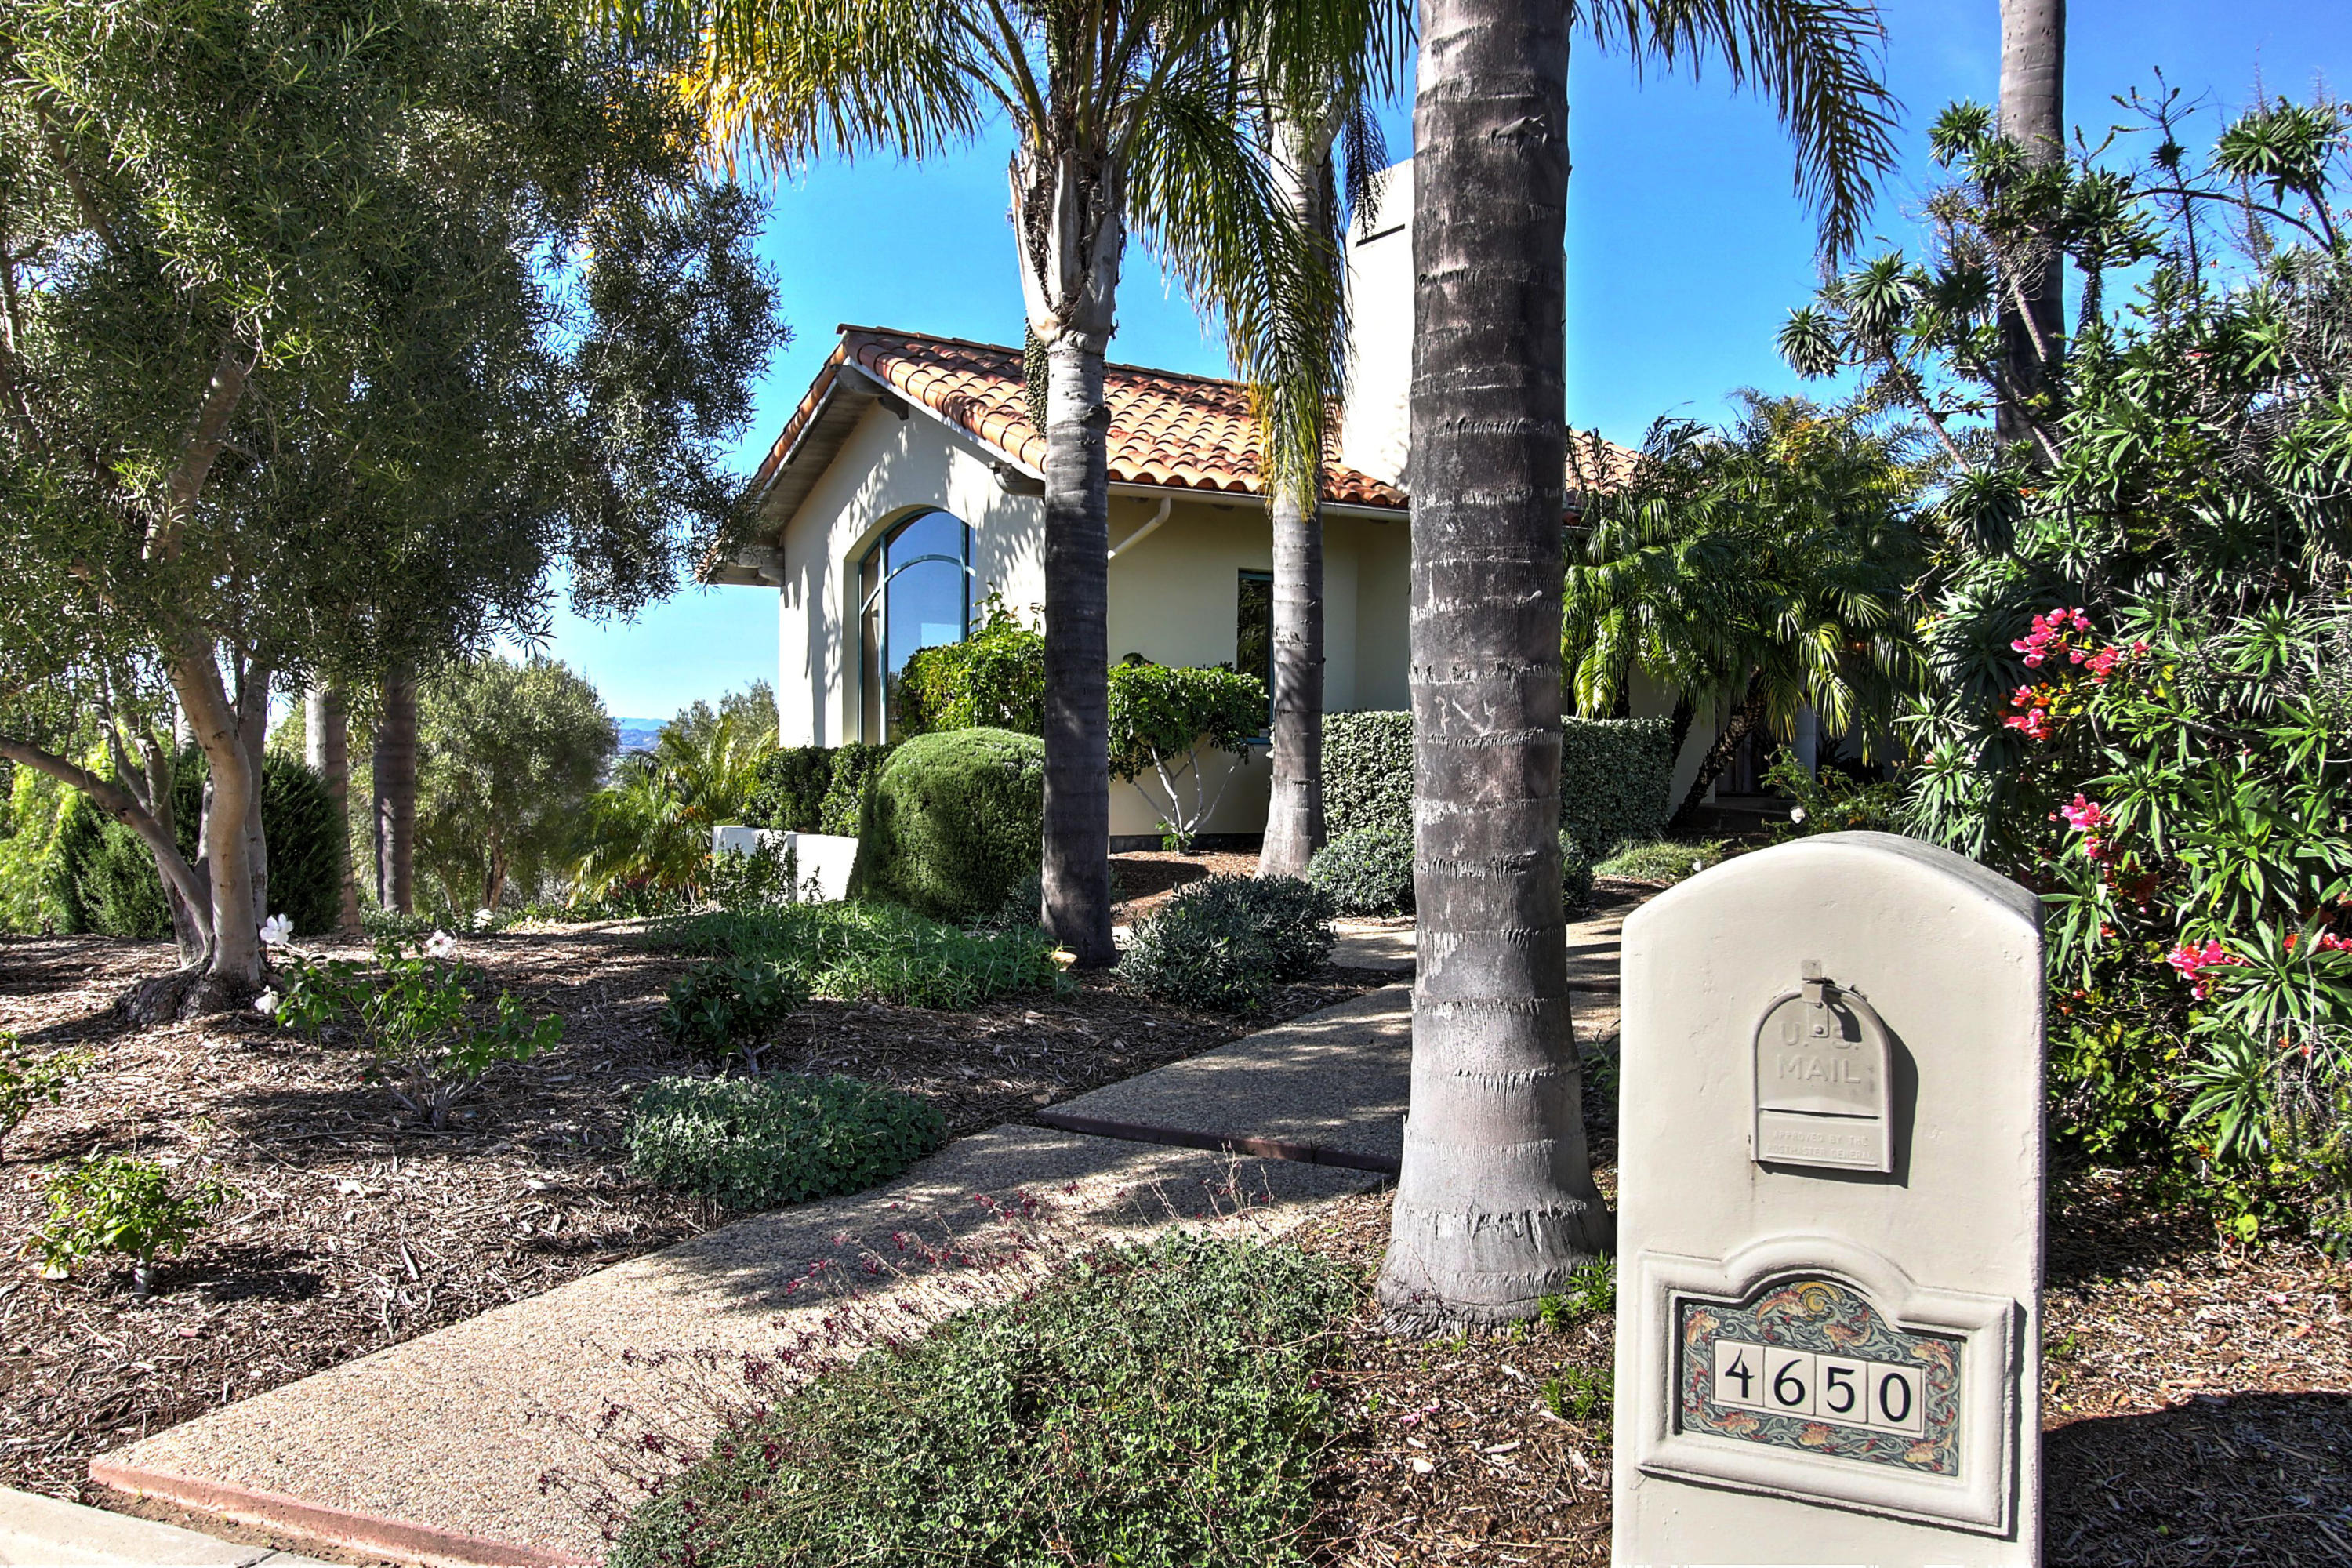 Property photo for 4650 Sierra Madre Rd Santa Barbara, California 93110 - 17-417